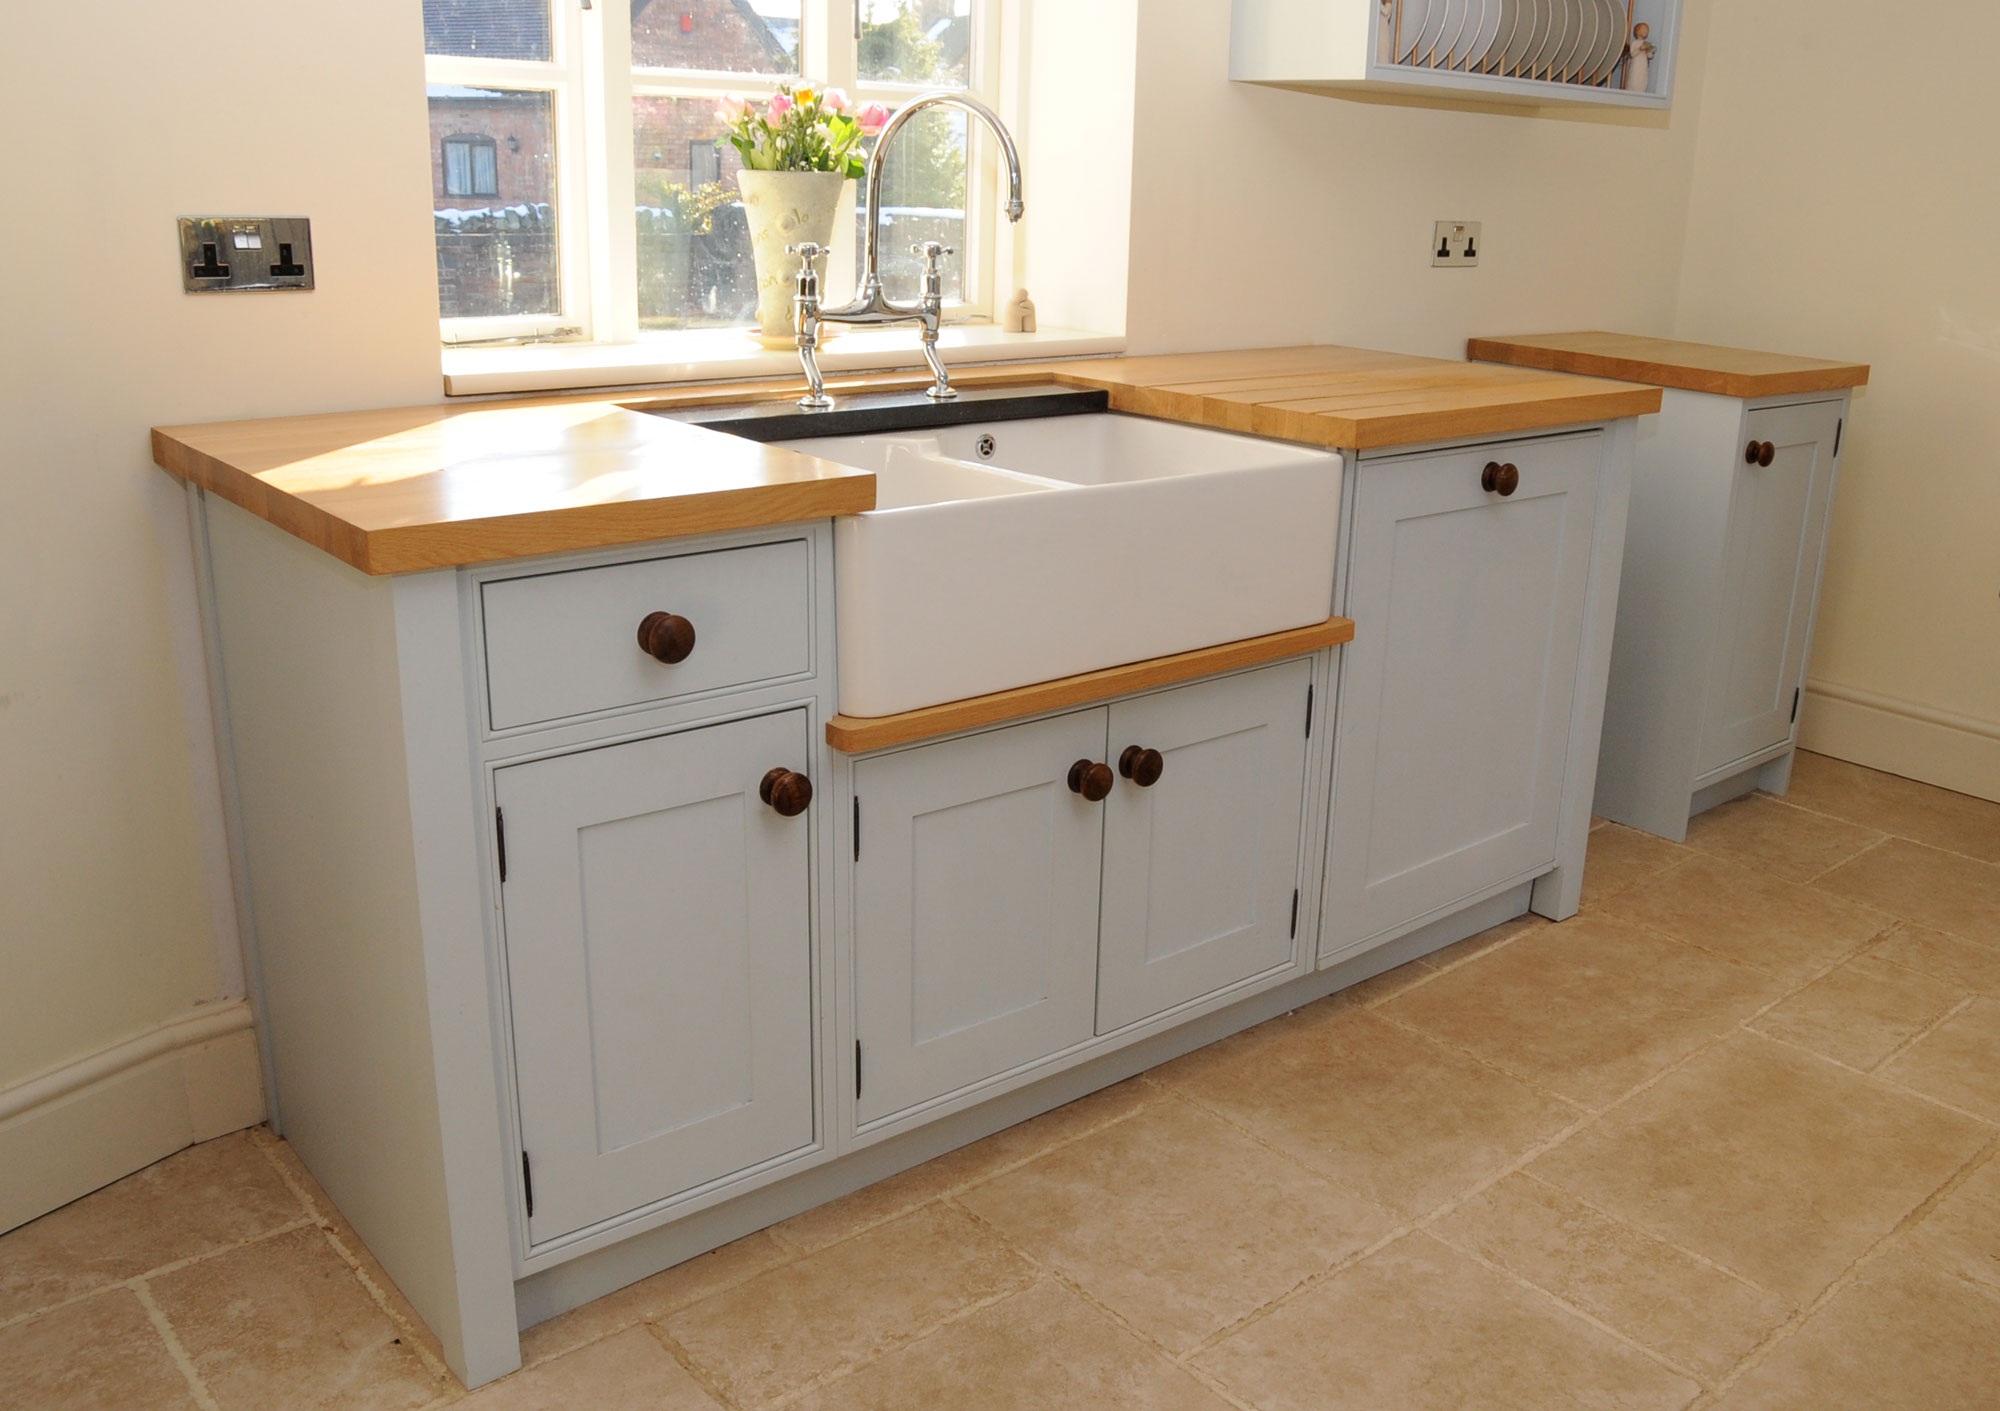 Bedroom Furniture Kitchen Cabinet photo - 2